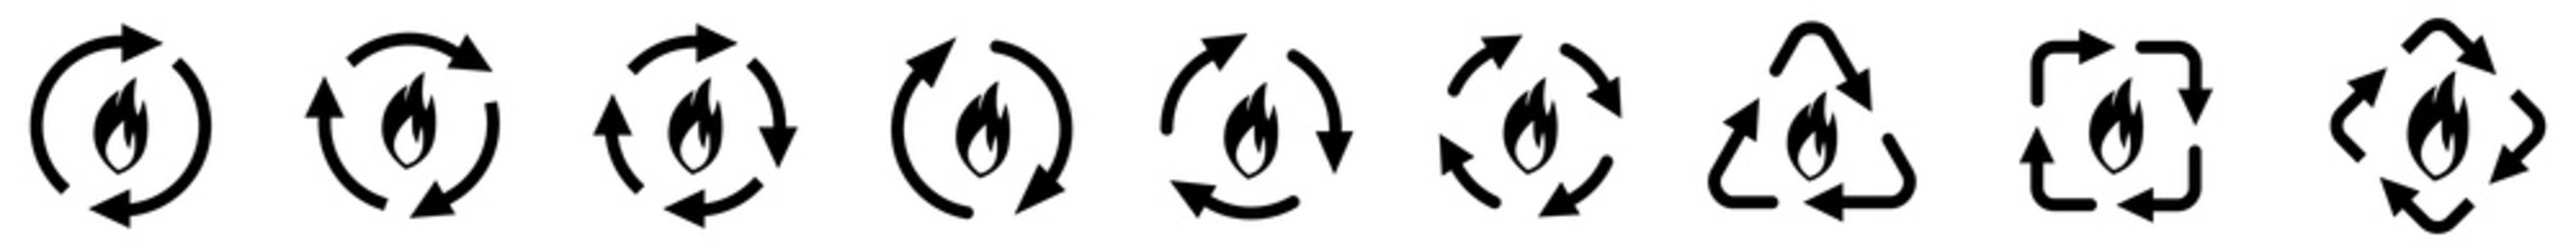 Flame or fire icon in arrows forming cycle, two three and four arrow version